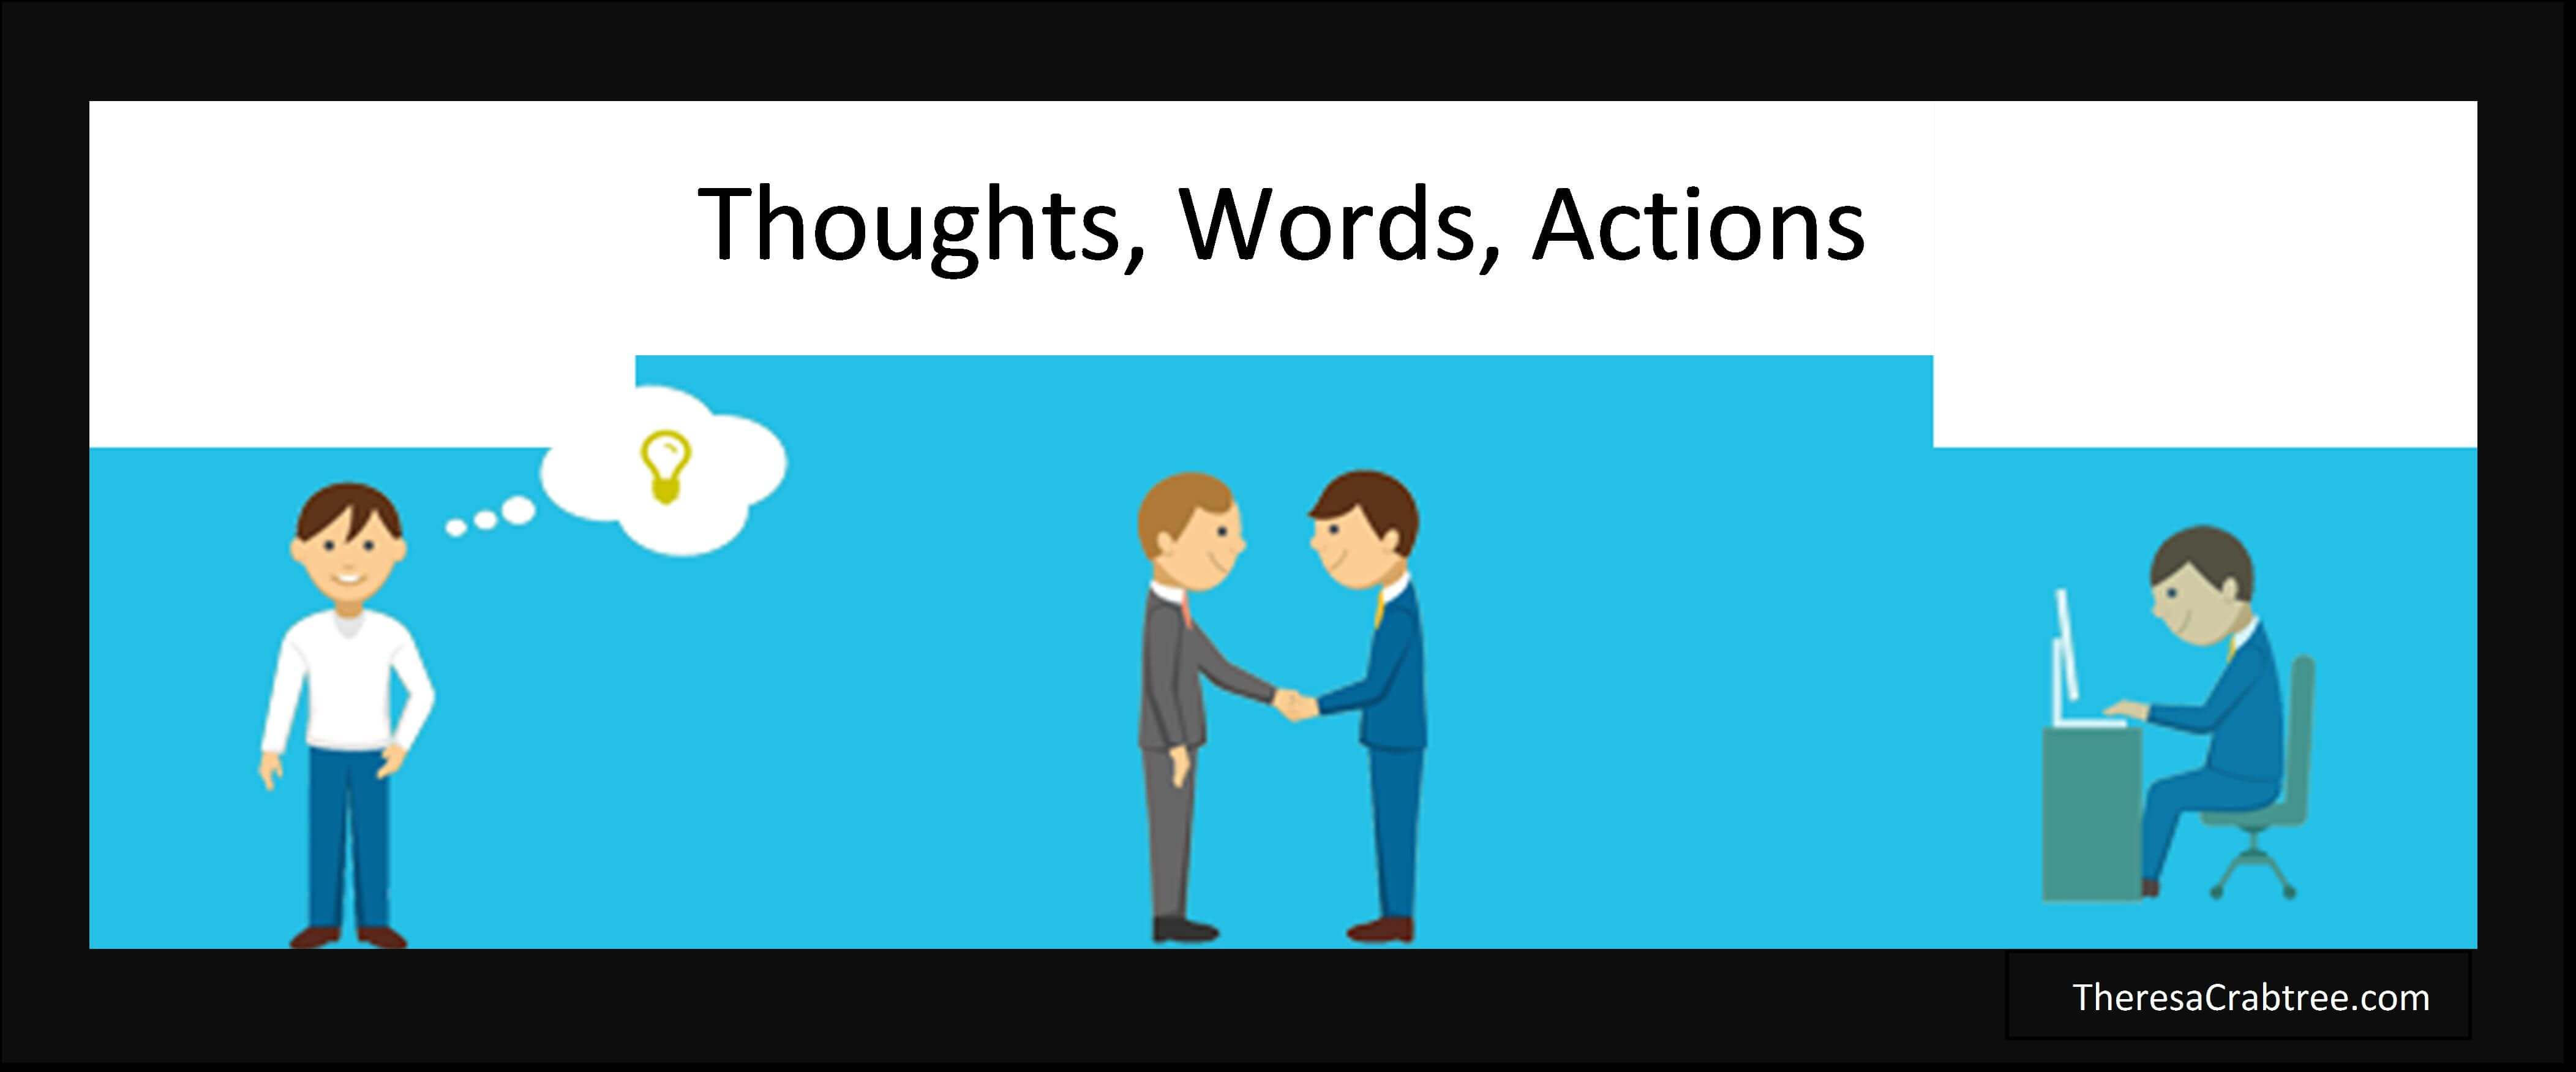 Soul Connection 223 ~ Thoughts, Words, Actions